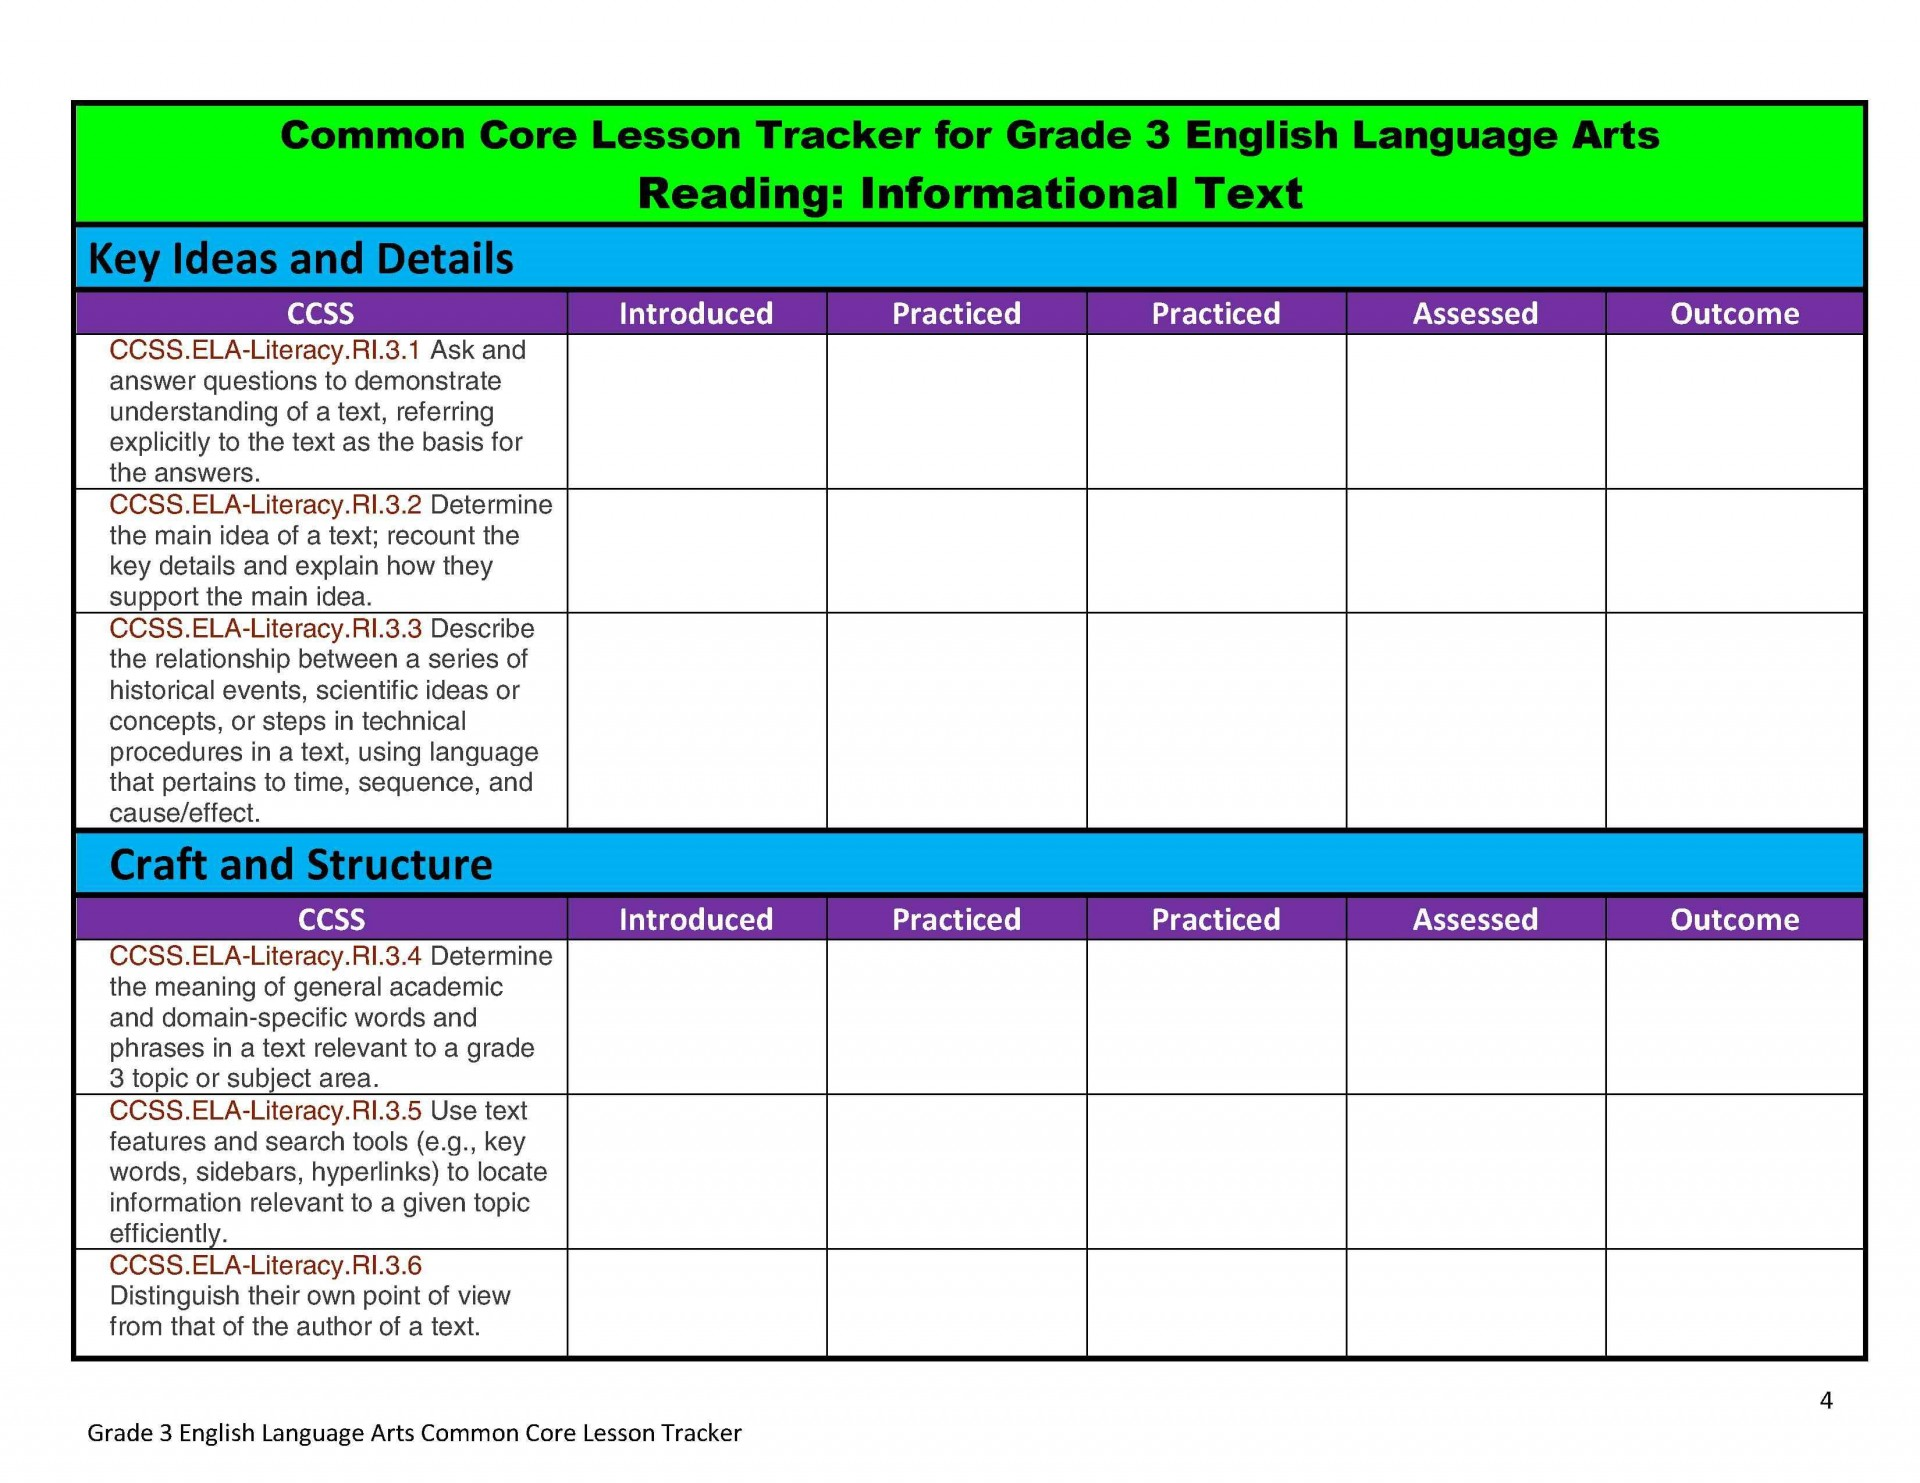 004 Staggering Lesson Plan Template For Kindergarten Common Core High Resolution 1920